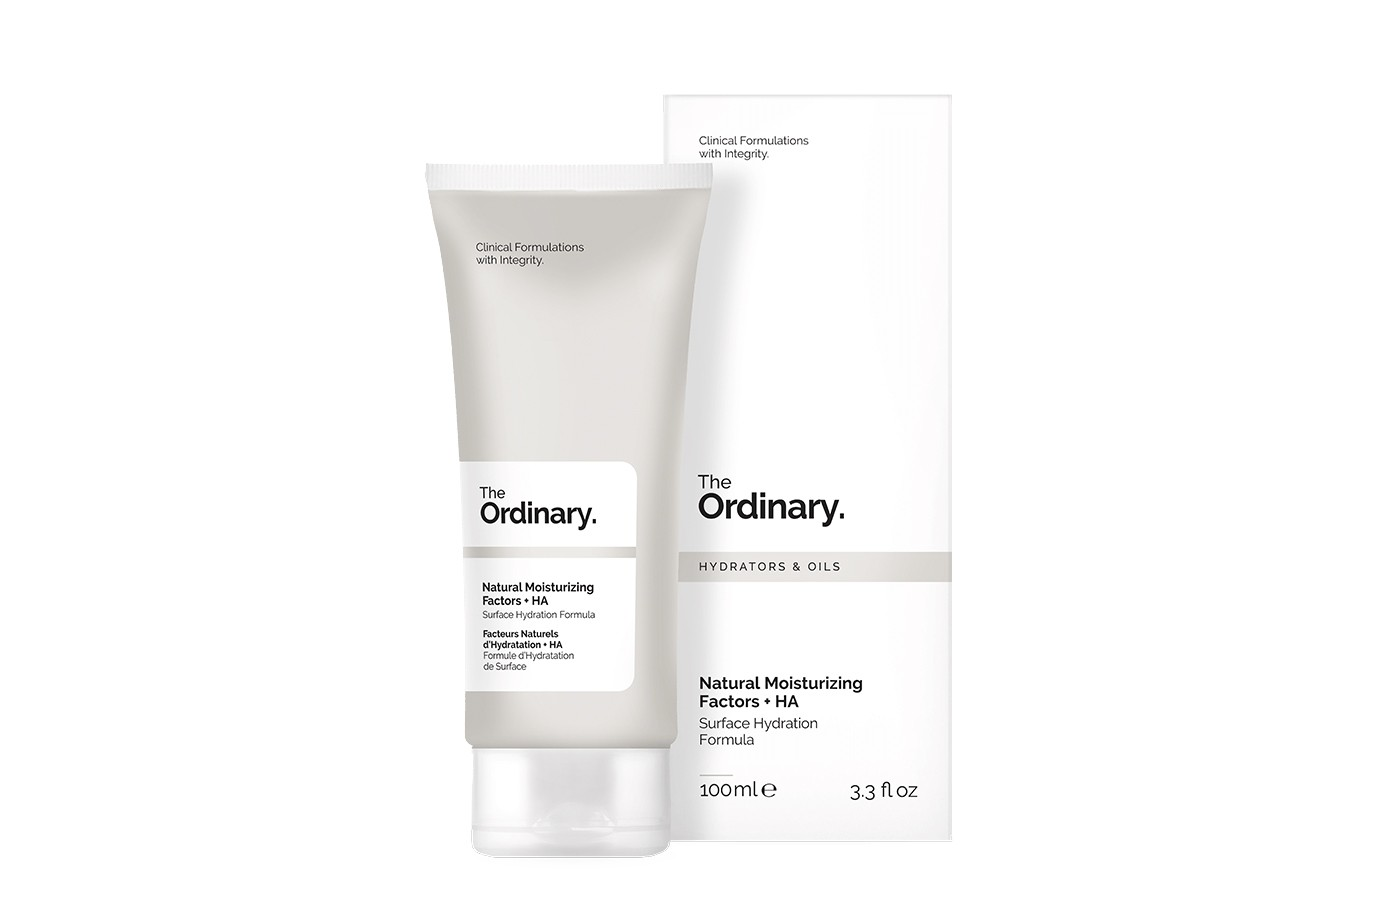 Best The Ordinary Products for Dry Winter Skin Dehydrated Hyaluronic Acid Squalane Hydration Moisturizer Affordable Skincare